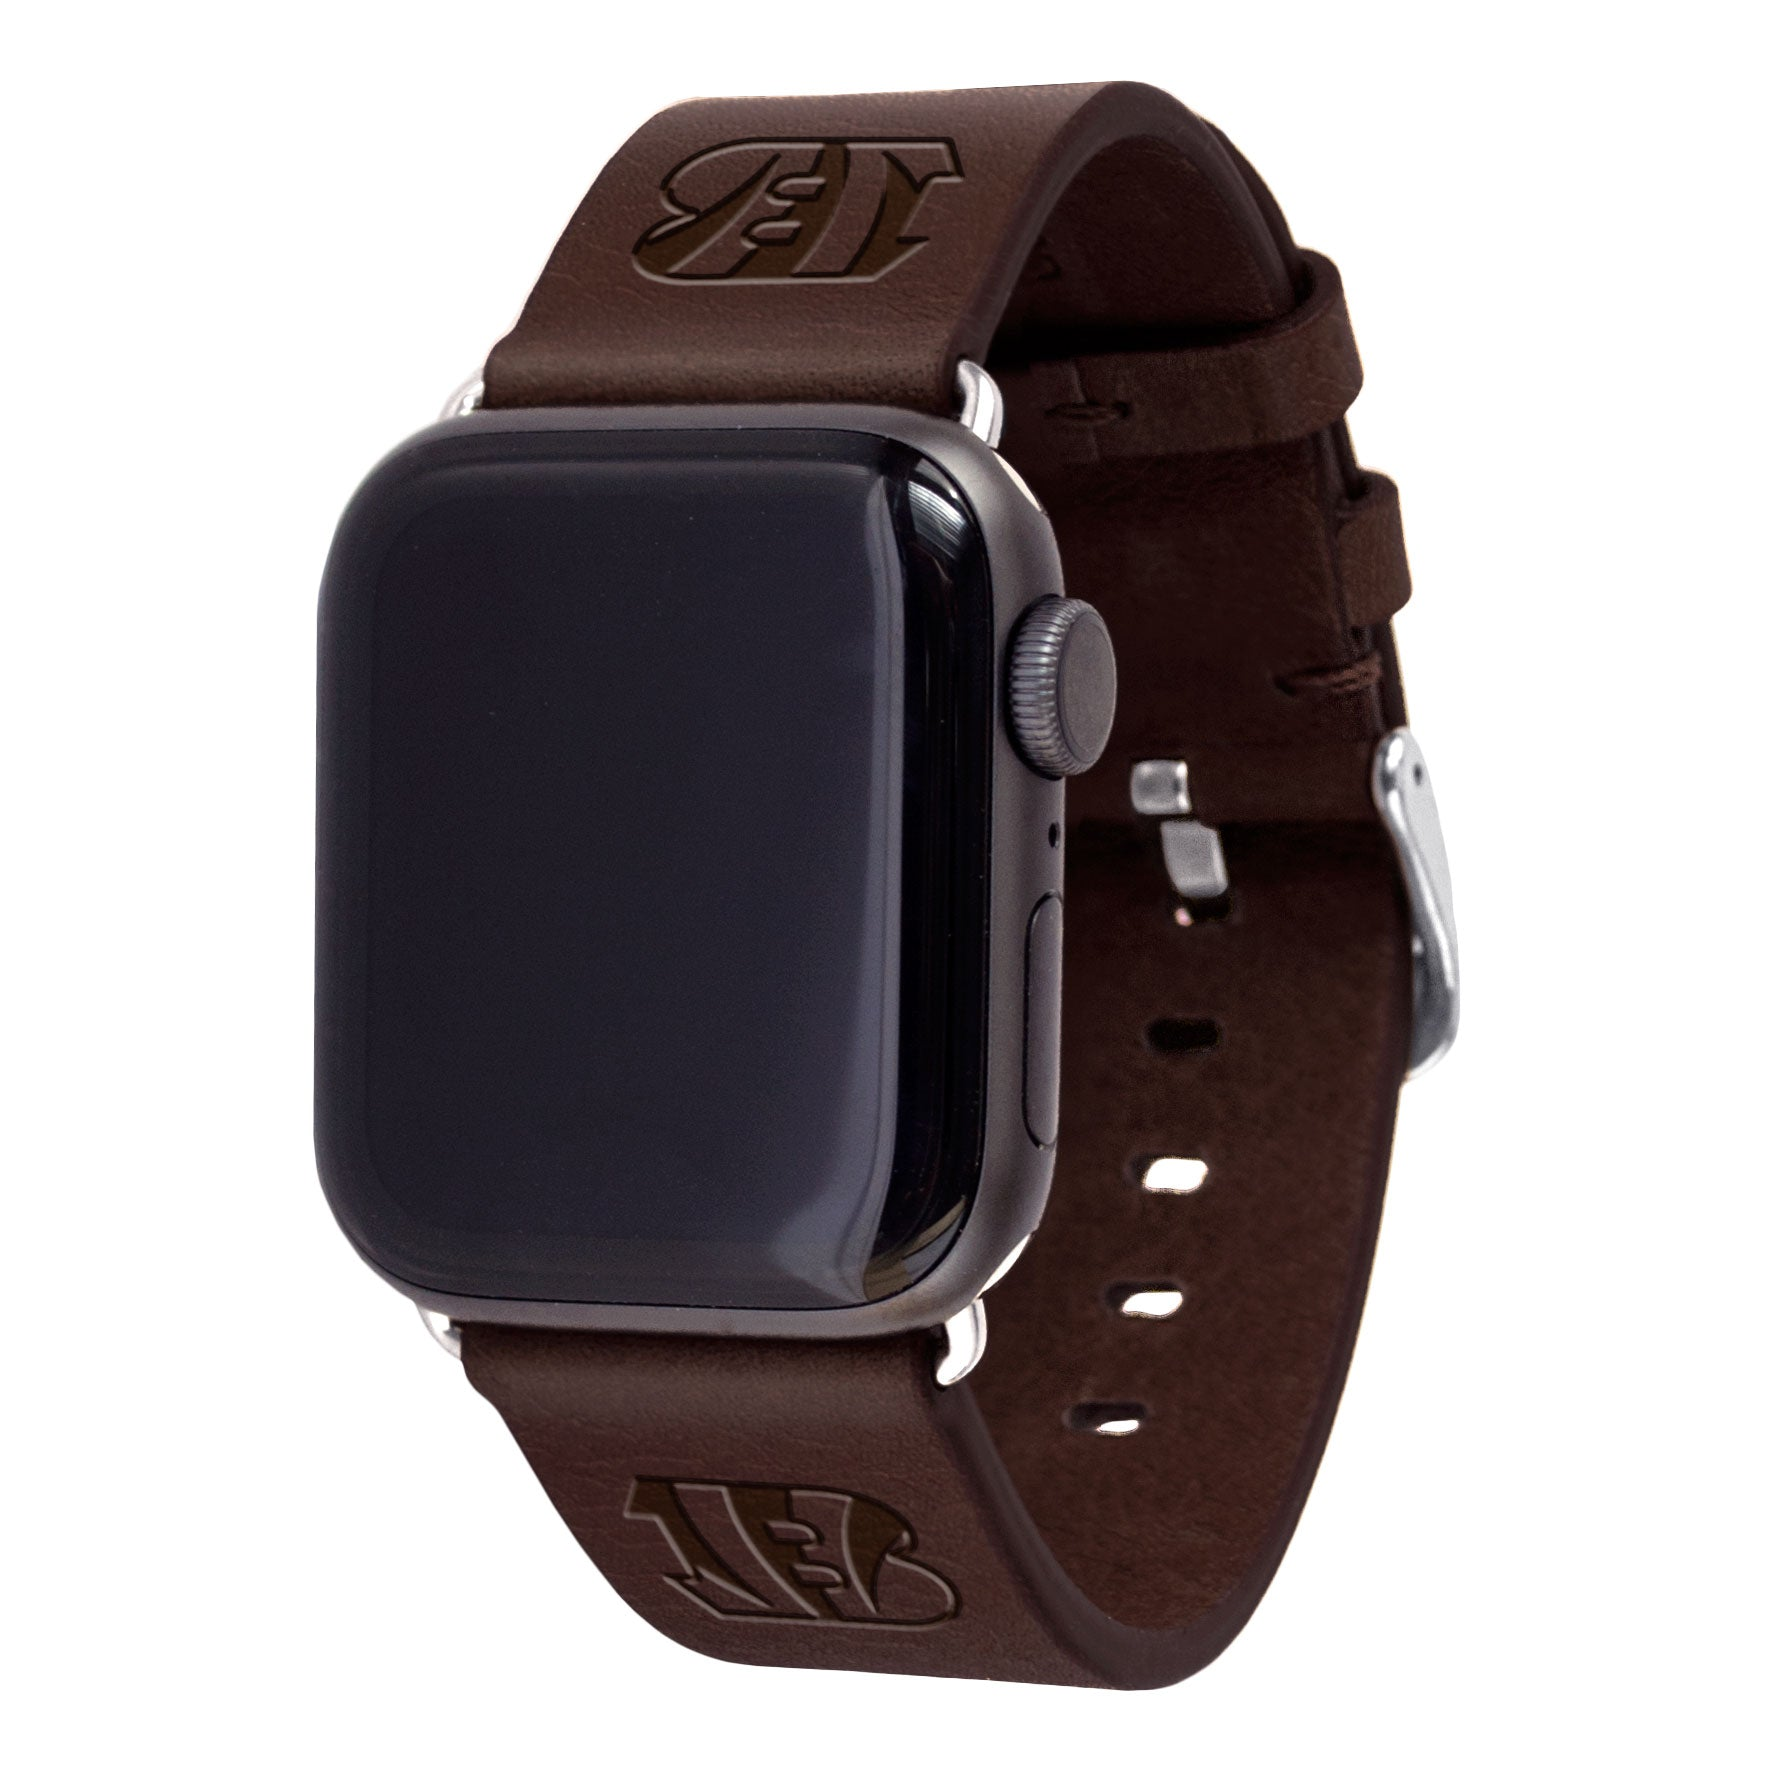 Cincinnati Bengals Leather Apple Watch Band - AffinityBands